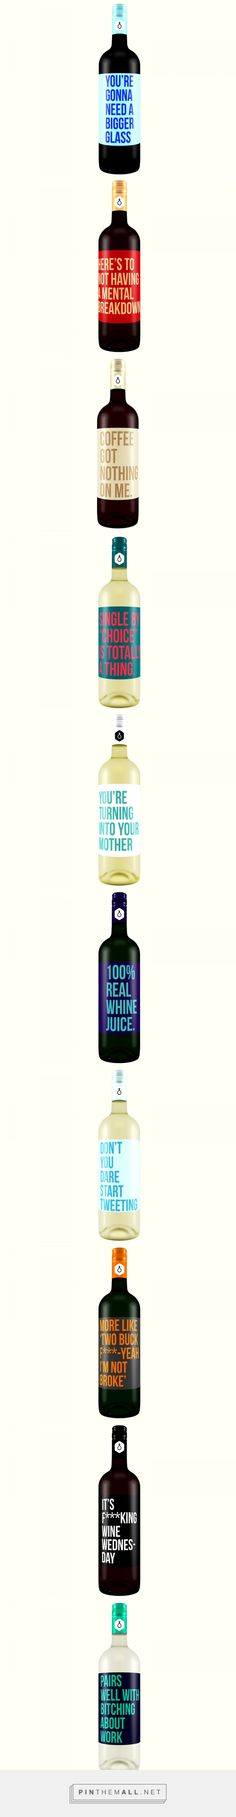 Wine Labels That Have No Time For Your Crap via VinePair curated by Packaging Diva PD. I just picked a few of the wine packaging bottles that were funny to me. There's more....... : )